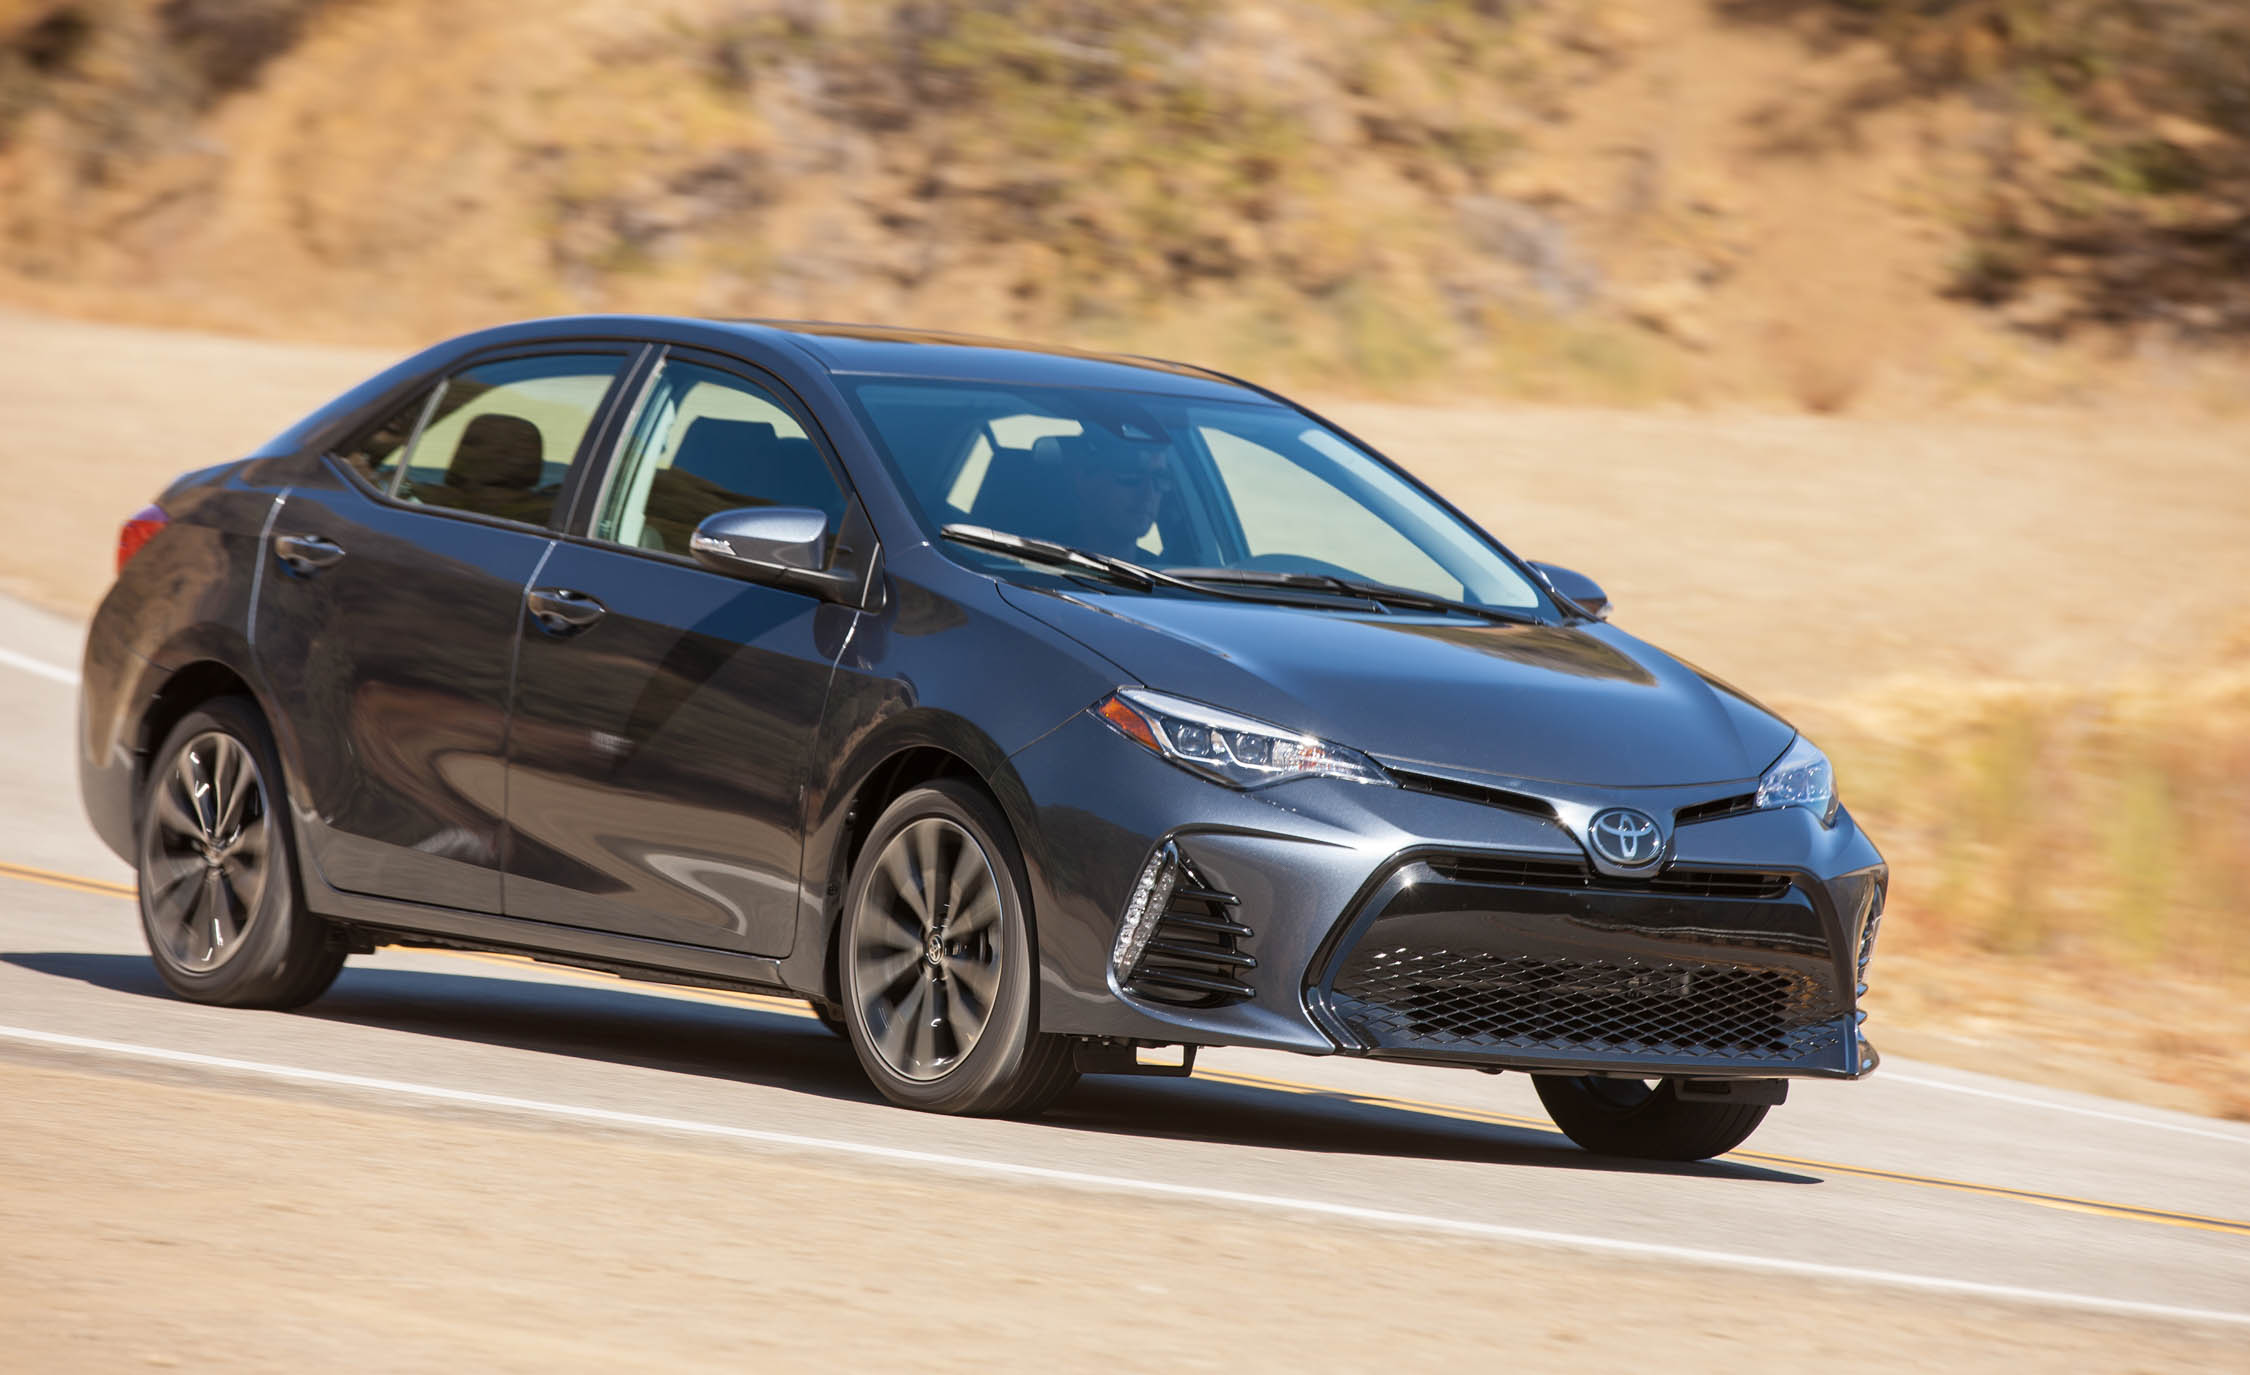 2017 Toyota Corolla XSE (View 1 of 75)